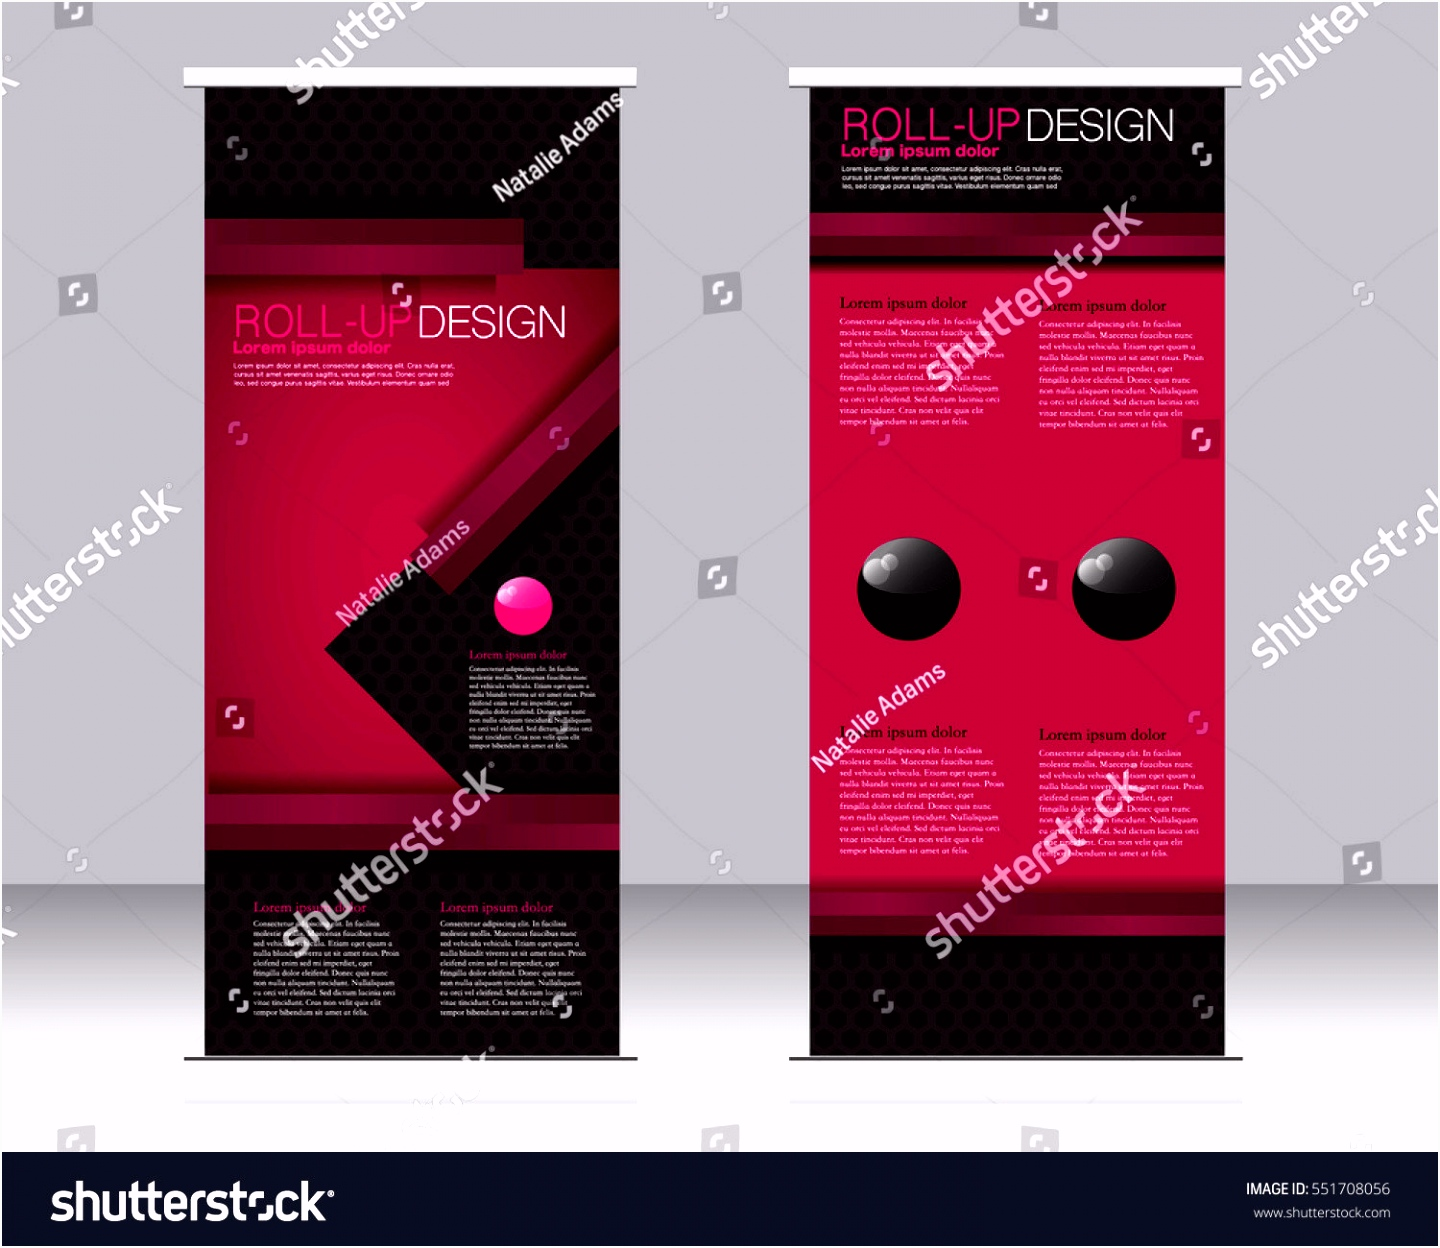 Best Afl Banners Unique Roll Up Banner Stand Template Best Roll Up